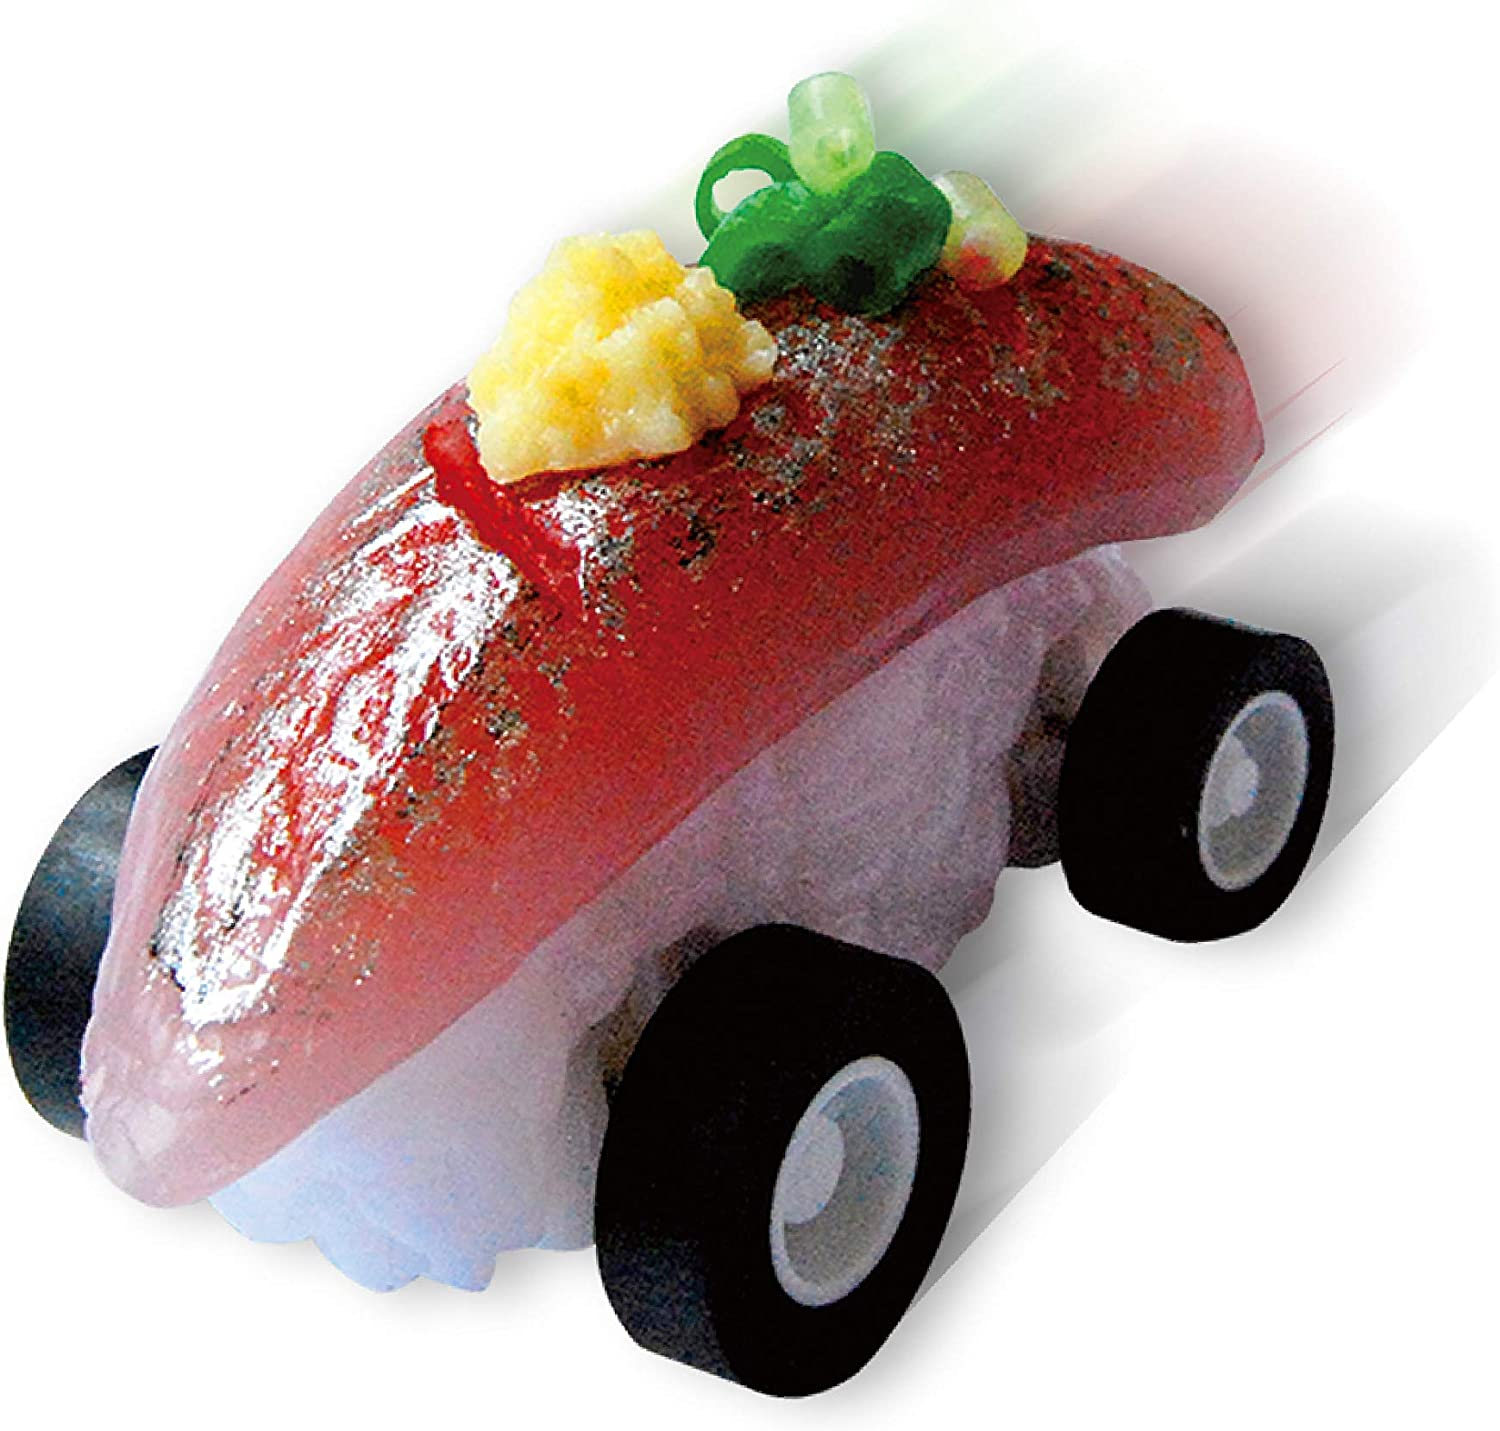 Sushi Boon (Horse Mackerel), the worlds fastest sushi pullback cars. Realistic food replicas made by the experts. Great for kids who like model and toy cars like Choro-Q. Real. 9 types in total.